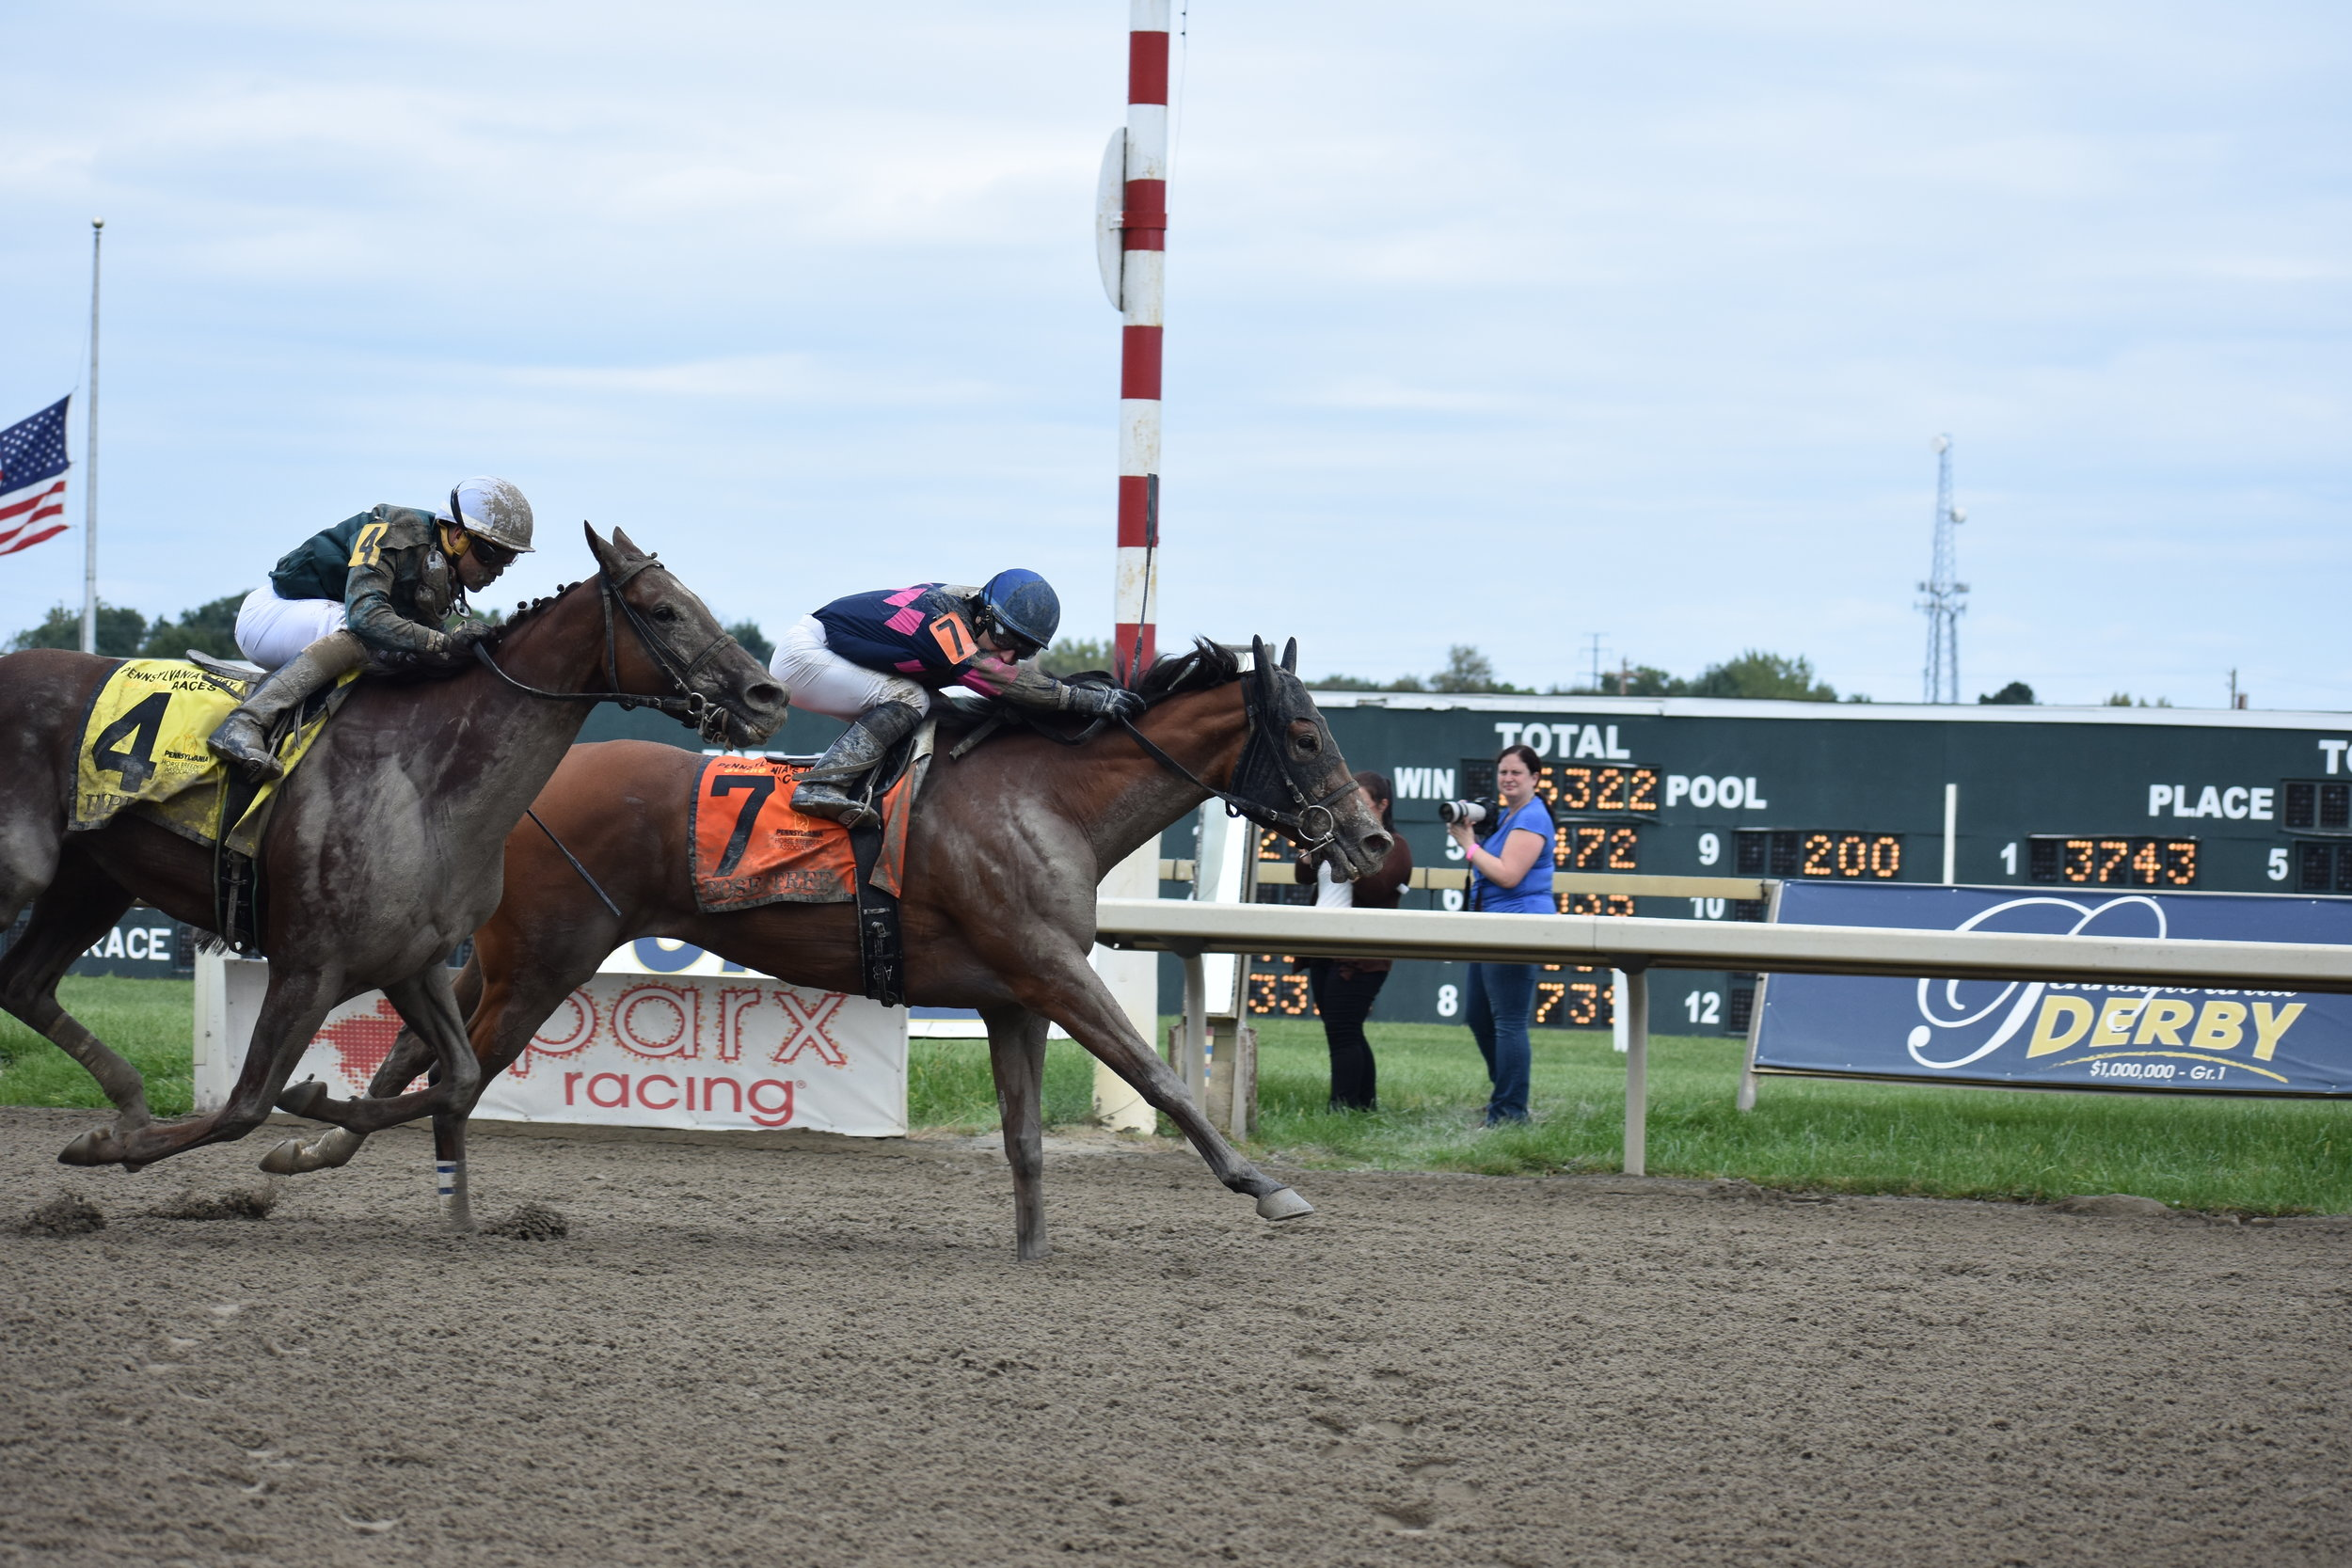 "Pennsylvania's Day at the Races 2018 was held Saturday, September 1, 2018. It proved to be a great day of PA-Bred racing, featuring $1 million in purses for the first year in the event's history! Over 110 PA-Breds showcased their talents as they battled down the stretch in each of the card's 11 races.     The Pennsylvania Horse Breeders Association treated Pennsylvania breeders and their guests, owners and trainers to a buffet lunch, complete with a private third-floor view of the track. Raffle prizes included PHBA bags full of PA-Bred swag; a hand-painted cornhole game set, courtesy of J & M Custom Cornhole; and baskets loaded with horse-related items donated by the PTHA and Turning for Home. The winning stakes owners received a leather PHBA overnight bag and the winning stakes trainer received a cooler with the name of the stakes race embroidered on it for the winning PA-Bred, presented in the winner's circle. All stakes participants received a Patagonia backpack filled with PHBA goodies. All breeders and their guests who attended the luncheon received a PHBA tote bag filled with a blanket, hat and coffee mug.     Kicking off the stakes races of the day was the Dr. Teresa Garofalo Memorial Stakes, for fillies and mares three and up. Won by Castle Rock-bred Zipper's Hero, the five-year-old mare by Partner's Hero broke a step slower than the rest of the field but opened up a clear lead after the opening quarter. She led by two entering the far turn, and held off Risque's Diamond to win by three lengths. It proved to be the most emotional race of the day. Dr. Teresa Garofalo was the treasurer of the PHBA board before she passed away in 2010 from acute myeloid leukemia. Her equine practice in West Chester, Smokey's Run Farm, focused on equine reproduction, and the stakes in her name is a special one to the PHBA. Dr. Garofalo's mother, Vera Vann-Wilson, and brother, Ted Vanderlaan were in attendance to present the winning trophy. ""It's such an honor to be here and I'm grateful to you all for continuing the race in her memory. She would love this,"" Ted Vanderlaan expressed to PHBA staff in the winner's circle. The emotion didn't stop there. The win brought trainer Eddie Coletti Jr.'s earnings to over $1 million for the year so far for the first time in his career. It was also the first stakes win for the owner of Zipper's Hero, Mario Mangini, and jockey Johan Rosado had his first stakes win for Ed Coletti, Jr. The biggest celebration of the day was in that winner's circle! Congratulations to all on their achievements!     The Mrs. Penny Stakes was moved to the main track due to rainfall the night before. The change in surface didn't deter Mr. and Mrs. Rodman Moorhead's bred and owned Rose Tree as she continued her incredible comeback year with her second stakes win in a row. About six lengths behind on the backstretch, the four-year-old by Harlan's Holiday gained from there, taking command at the top of the turn. June's Lyphard Stakes winner Imply pushed ahead to catch the leader, but Rose Tree dug in and held on for the win. Rose Tree, under regular rider Andrew Wolfsont, and trained by Hall of Famer Jonathan Sheppard, paid $10 to win. ""She held on gamely. She's a very nice filly,"" Jonathan Sheppard told PTHA's Dani Gibson in a post-race interview.     The Banjo Picker Stakes was one of the most anticipated of the day, featuring last year's winner The Man, bred by Glenn E. Brok LLC. Despite another wardrobe malfunction this year, he proved to be the best again, in more ways than one. Untacked in the walking ring and retacked in the paddock stall with minutes to spare, the cool-under-pressure six-year-old trained by John Servis let everyone know that he really is ""The Man"". (Last year's malfunction came after the race when he stood quietly in the winner's circle to have a shoe pulled that came partway off during the race.) The Man, with regular rider Jorge Vargas Jr., broke well, picked up a short lead off the turn. Midtowncharlybrown, waited for room, and Pop Keenan made a late run but couldn't outrun The Man. ""We have won nine races out of ten. You cannot ask for a better horse,"" said jockey Vargas post-race. This win pushed his record at Parx to 7 for 8.     The first of two upsets came in the Roanoke Stakes. Michael Jester's bred and owned Grasshoppin, going off at 12-1, had a perfect trip under jockey Edwin Rivera. Trained by Claudio Gonzalez, the seven-year-old son of Cat Thief sat a length back down the backstretch and kept position after fractions of 23.62 and 47.41. He caught up to pace setter Navy Commander around the final turn and opened up in the stretch. Keeping the lead under urging by Rivera, he finished in 1:44.42, paying $27. Grasshoppin finished third in the same race last year, and the connections were thrilled to come back this year and win. ""To be able to come back this year… he's not a young horse, and to run as hard as he does, it really shows you the great athlete he is,"" Mike Jester said after the race.     The second of the upsets came in the last stakes race, the Power By Far, run on PA Day at the Races for the first time. Five furlongs on the main track after being moved off of the turf, She's Chubs, going off at 12-1, finished a length and a quarter in front of Charlybrown's Rose. Following about two and a half lengths behind leader Captain Sam, She's Chubs closed the gap after the first quarter mile of 21.67. Under urging from rider Roberto Rosado, she surged ahead at the eighth pole and finished in :58:68. Bred by Rebecca Fawn Stepanoff & John Phillip Taylor Jr., owned by Aurora Vista LLC and trained by Scott Lake, the five-year-old daughter of Albert the Great racked up her first stakes win, paying $26.40. ""So happy for the owners. We entered this horse 13 times, couldn't get a race to go. Last minute we decided we were going to run off the turf and it was just tremendous,"" trainer Scott Lake told PTHA's Dani Gibson.     We extend a sincere thank you to all of our members and guests who attended, as well as the board members and special guests who presented the gifts in each race. We're looking forward to a successful and productive 2019 breeding season and wish everyone the best of luck in the coming year. Visit www.pabred.com for a full gallery of the day's photos."